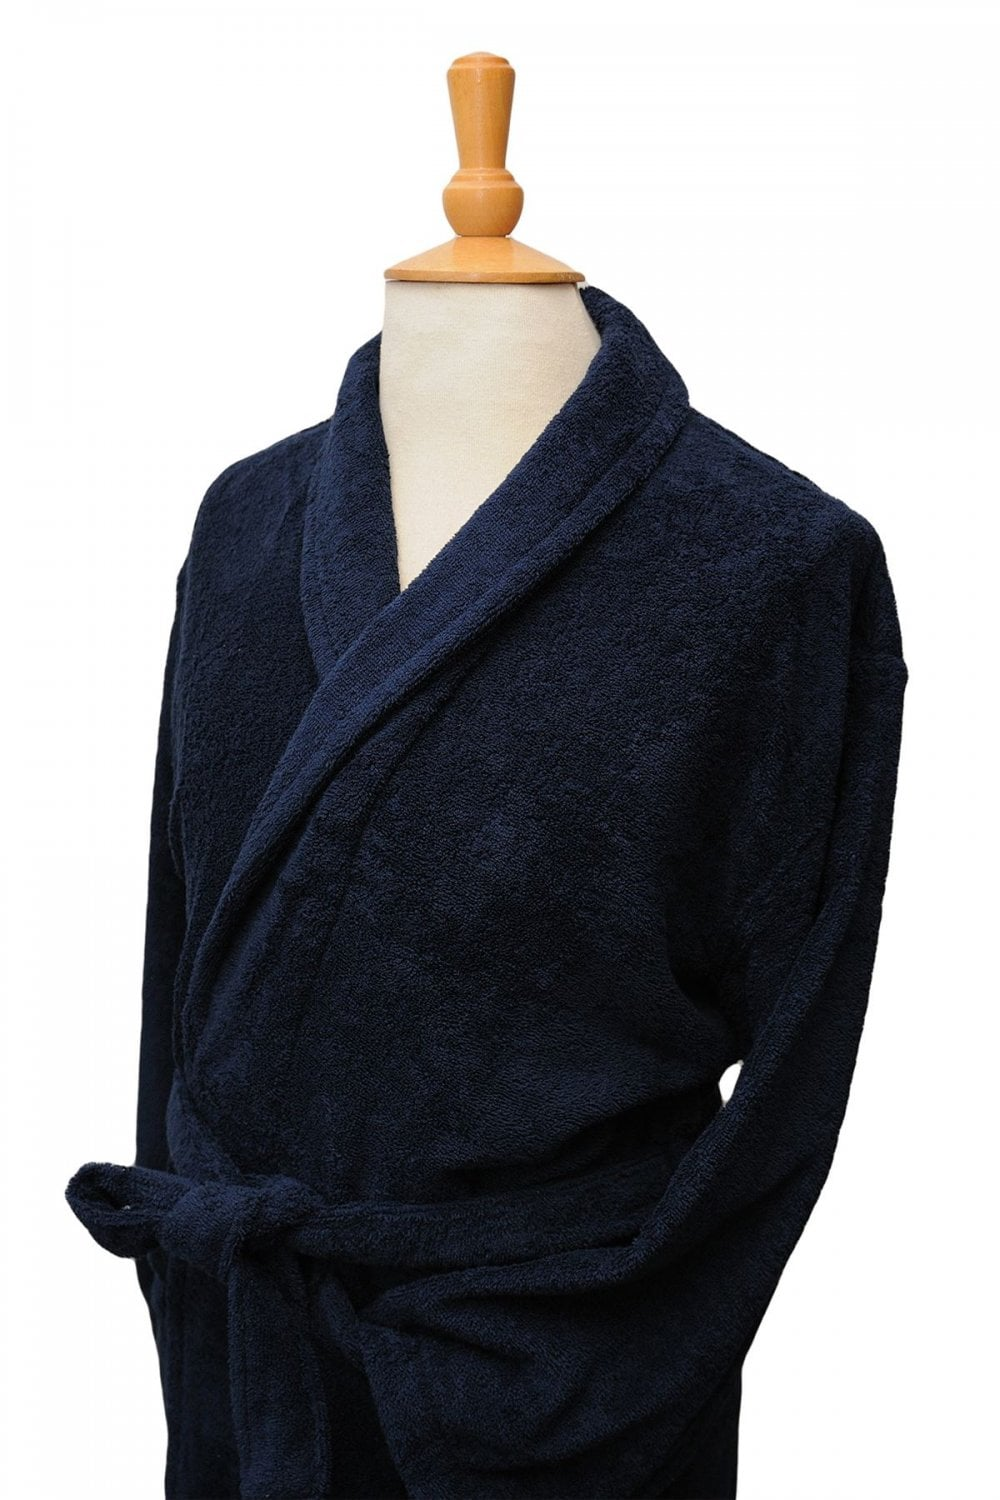 bc280d6238 Bown of London Terry Towelling Navy Dressing Gown - Bath Robe - 100 ...